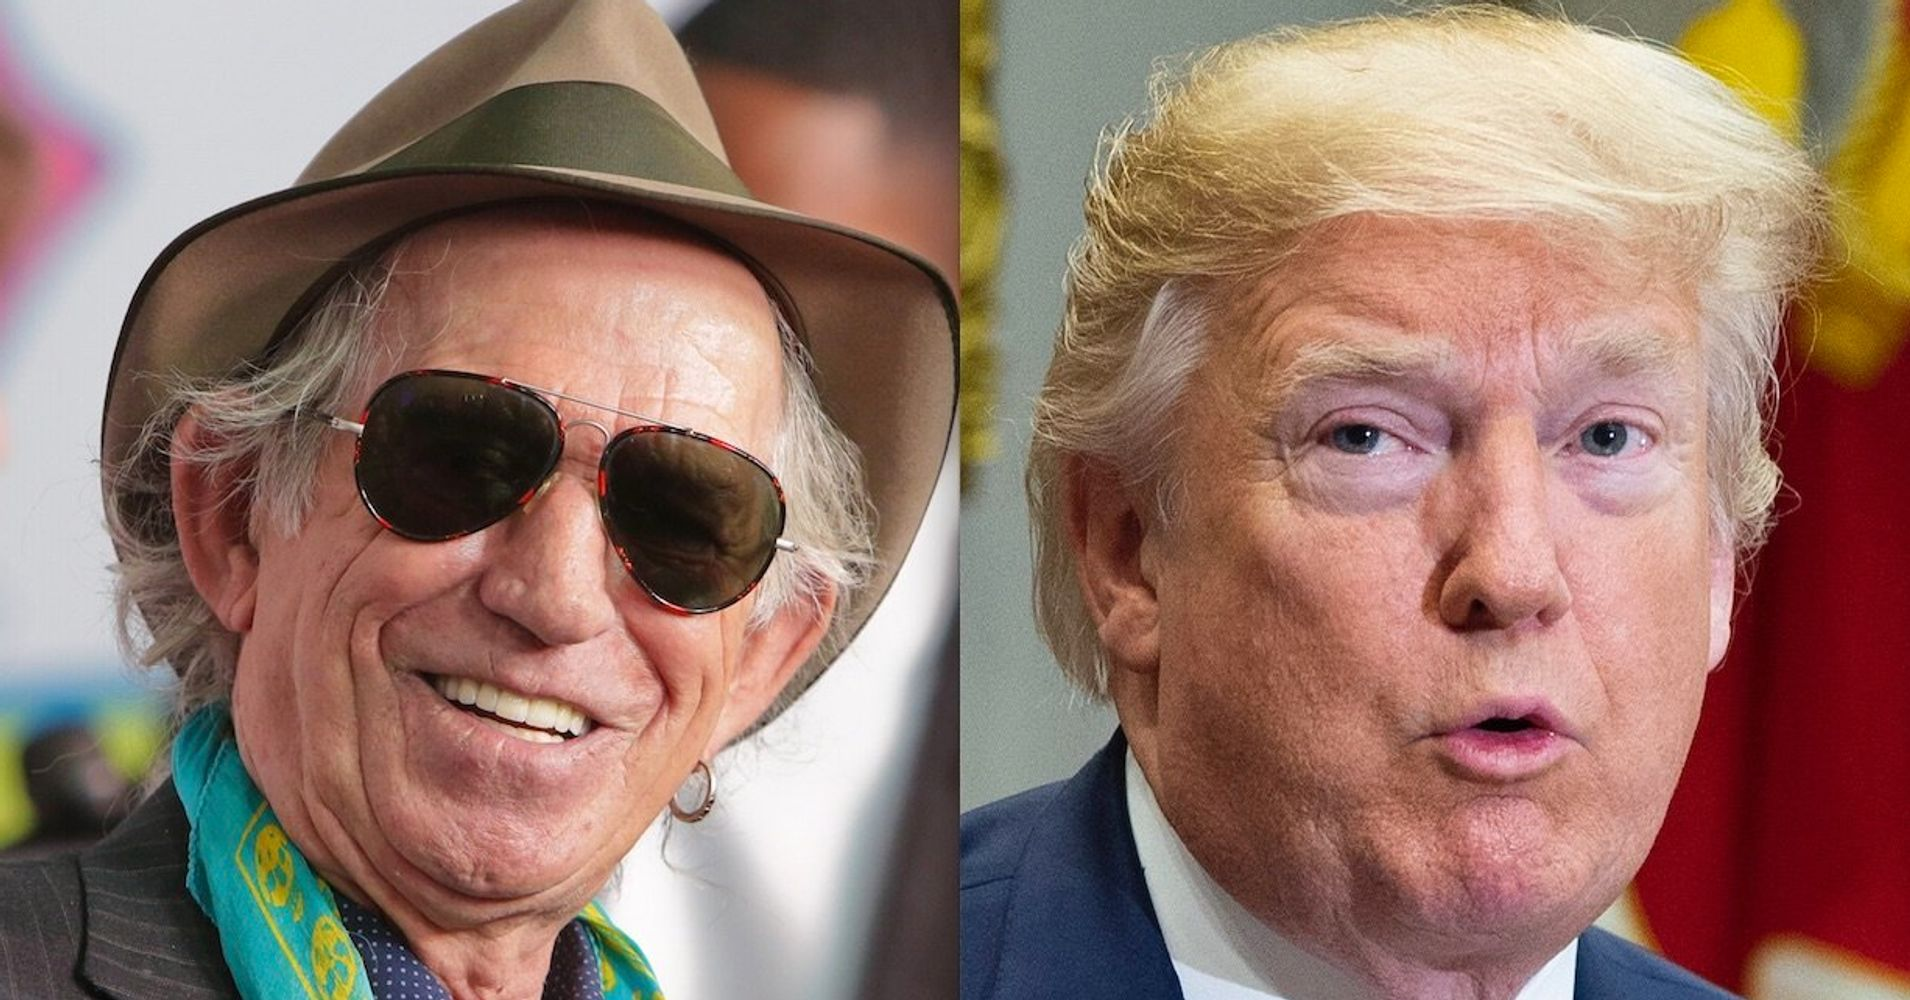 Keith Richards Explains How He Got Rid Of Trump Nearly 30 Years Ago